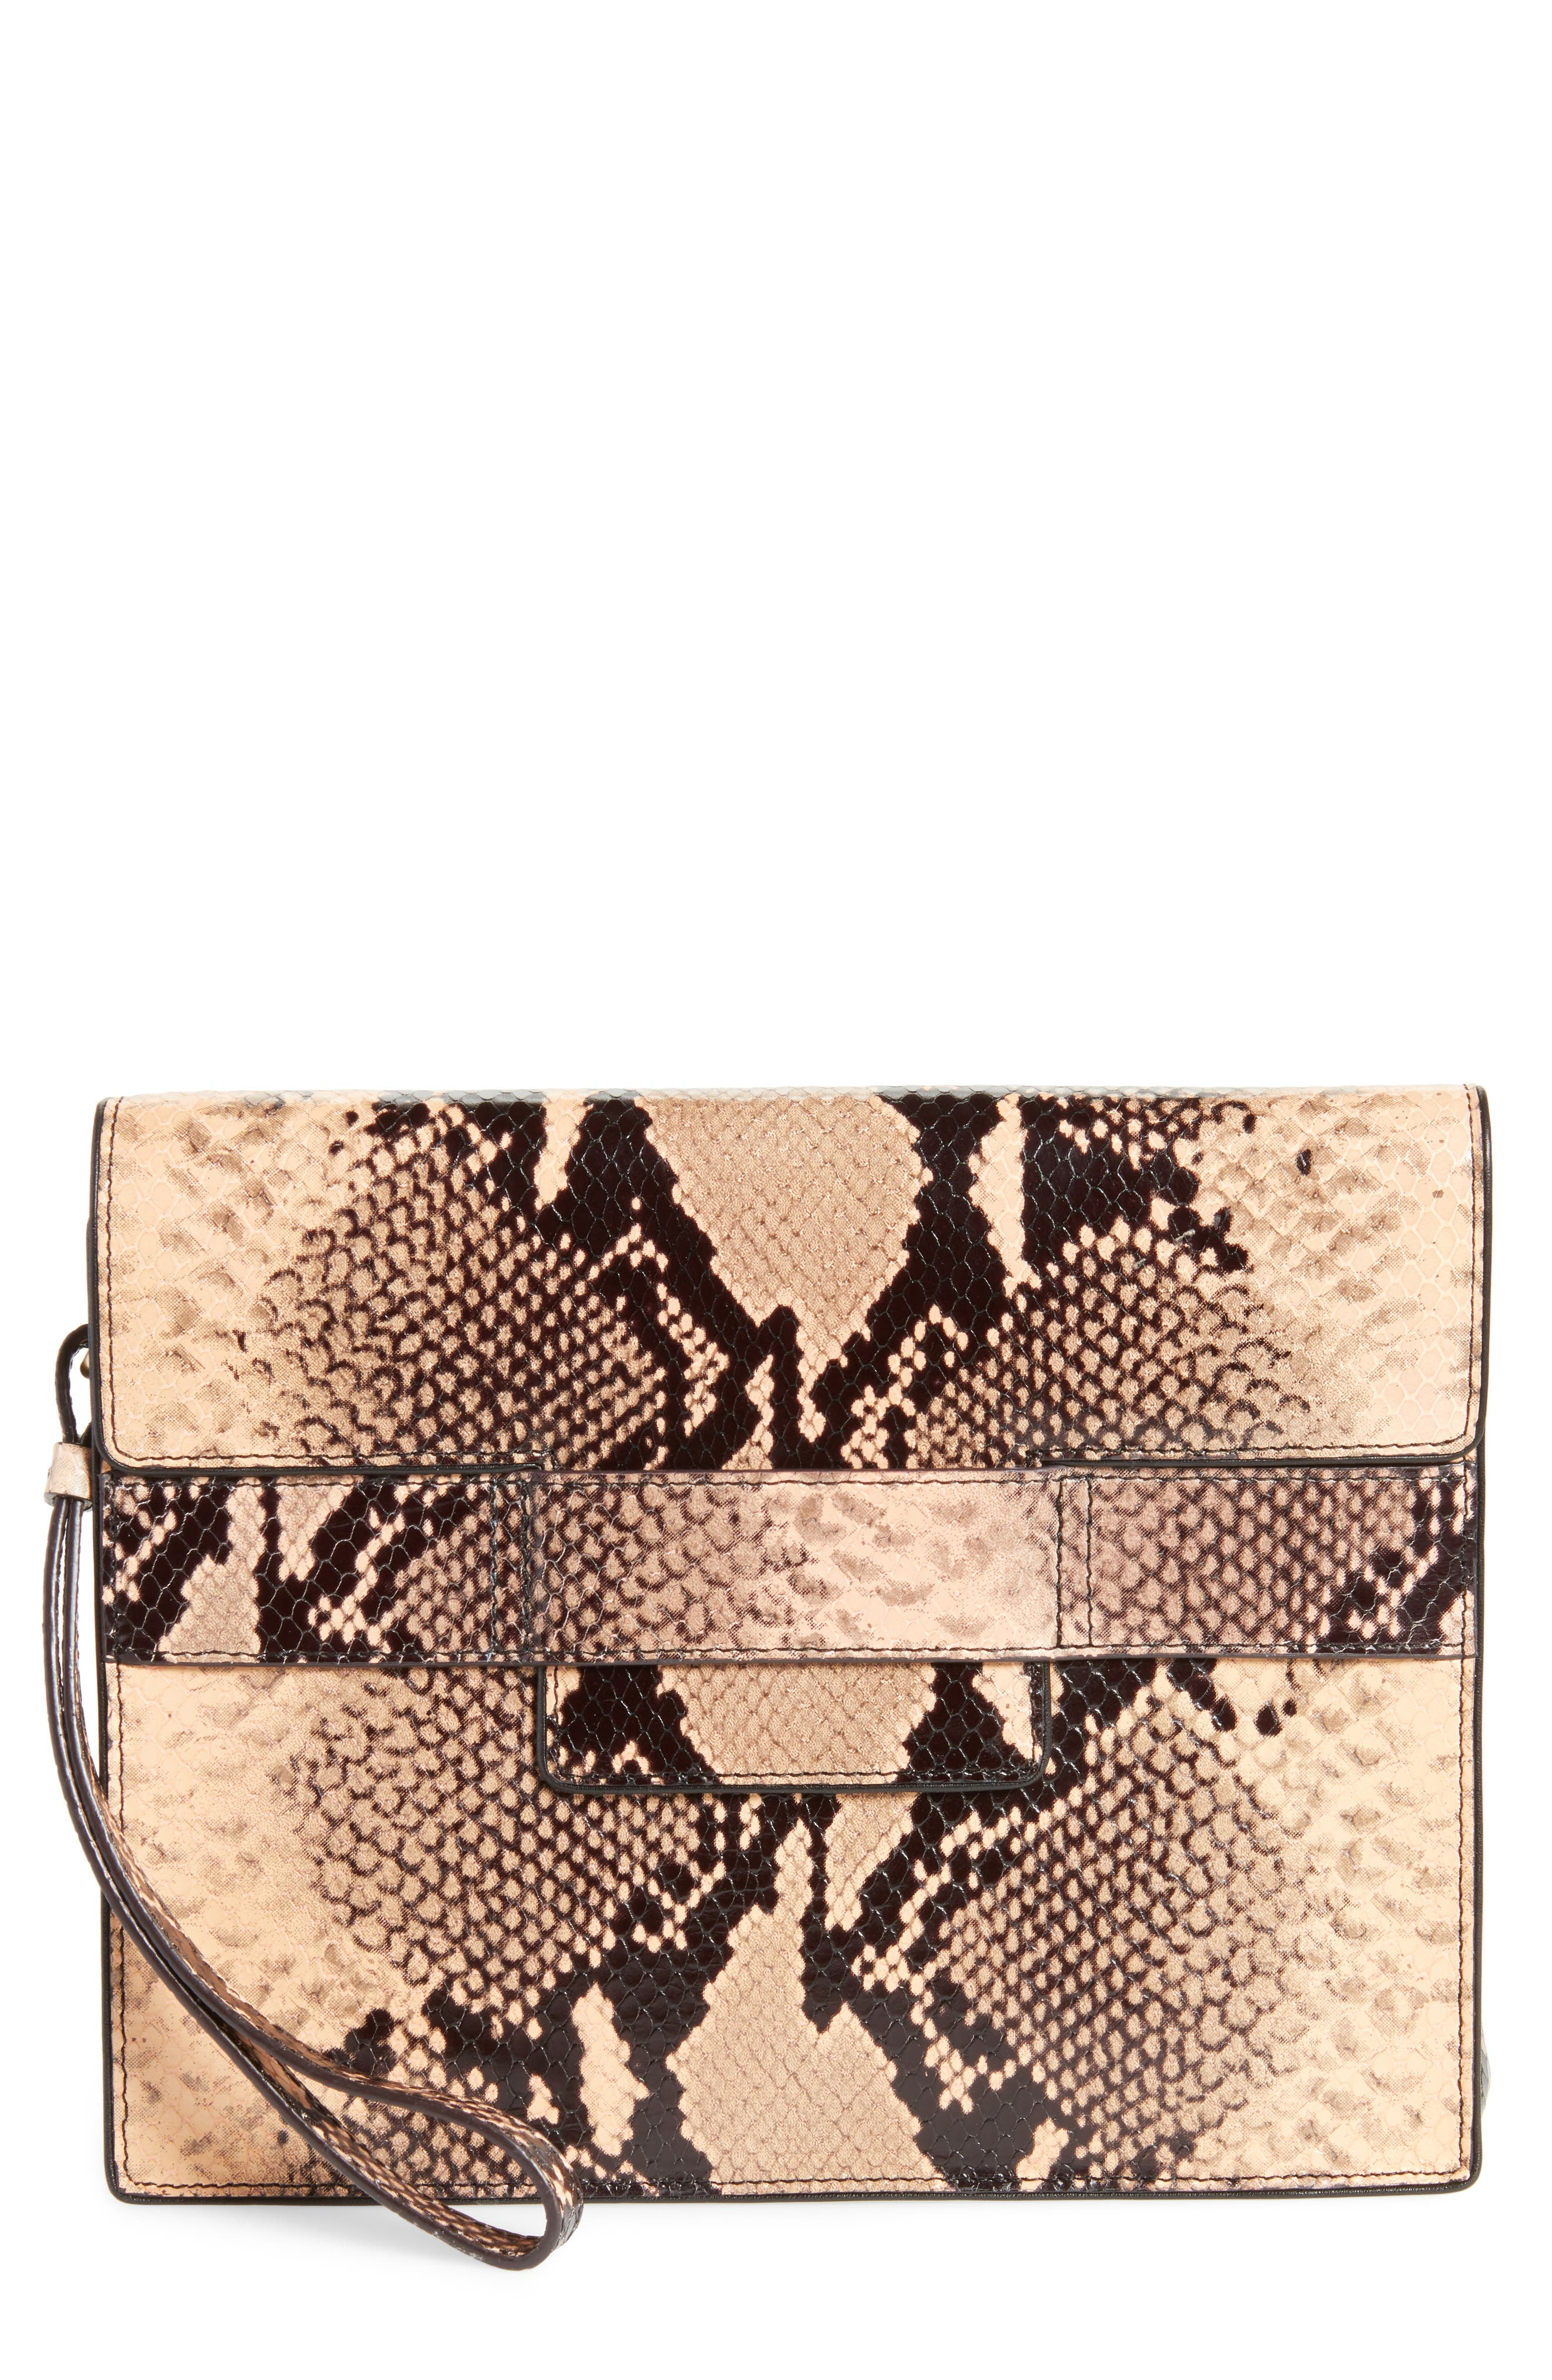 Snake Embossed Leather Wristlet Clutch,                             Main thumbnail 1, color,                             Camel